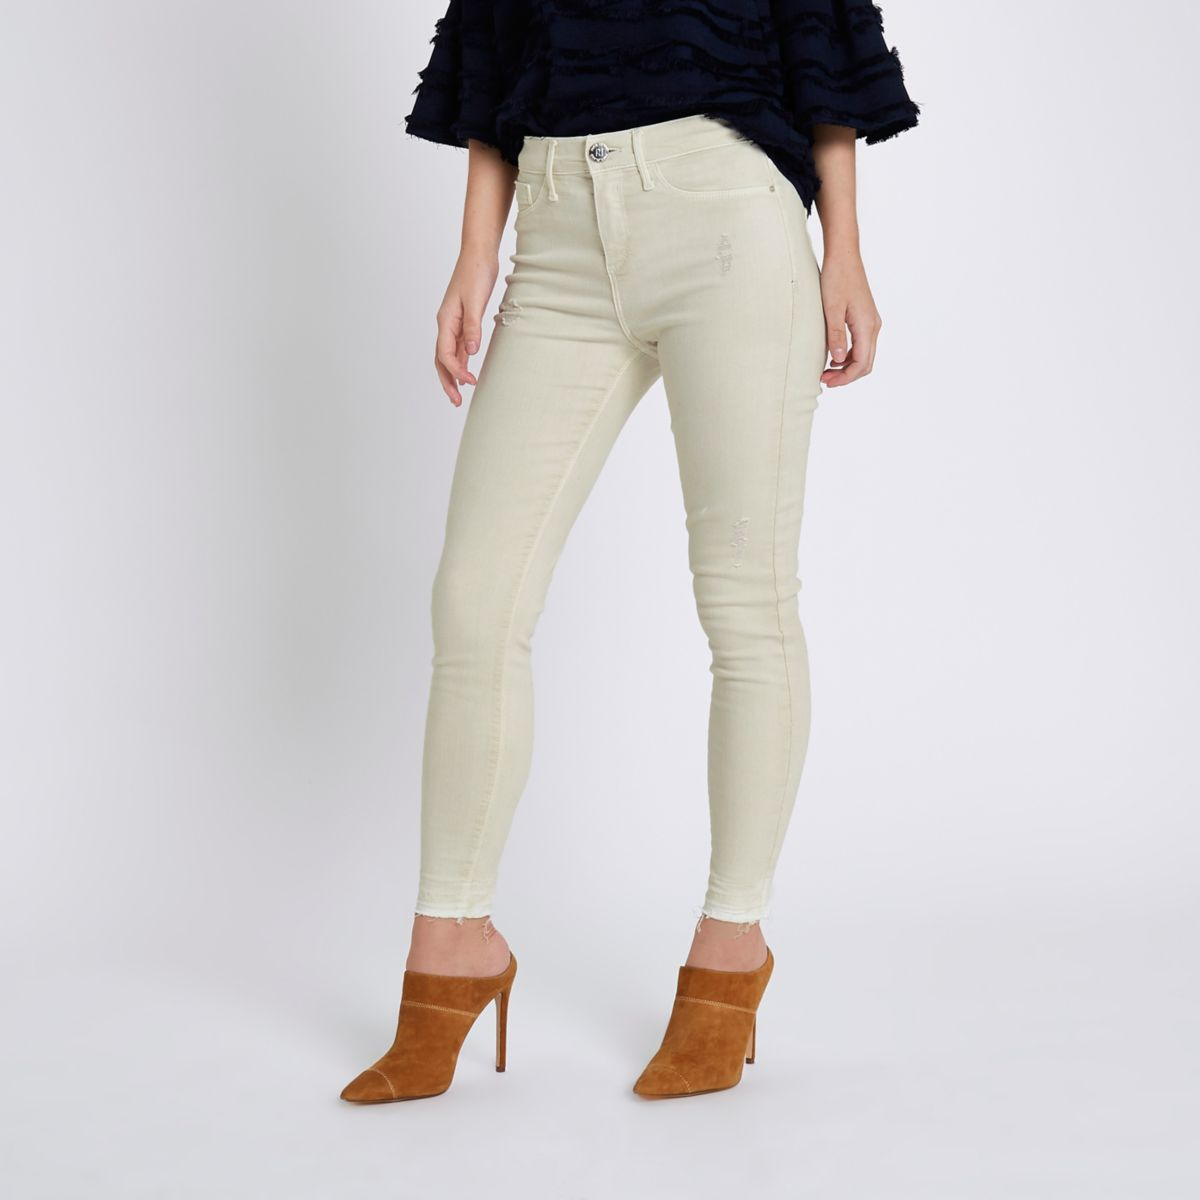 Enjoy free shipping and easy returns every day at Kohl's. Find great deals on Womens Jeggings at Kohl's today!